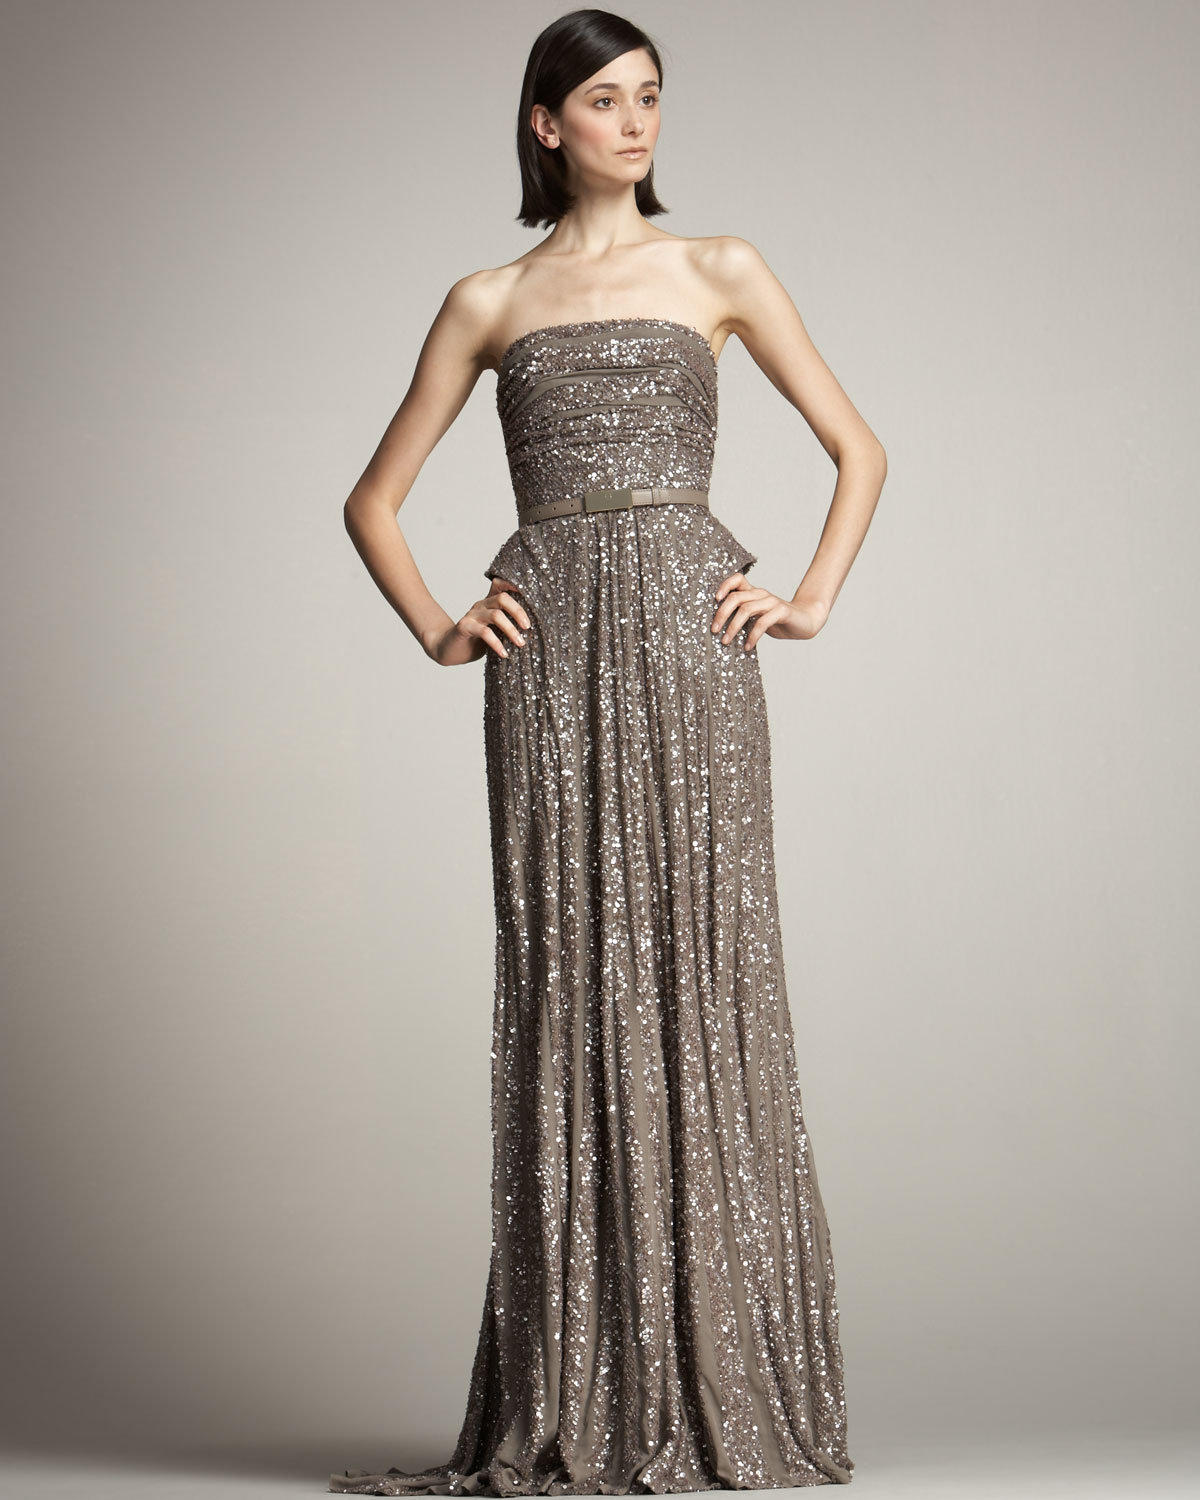 Elie saab Beaded Strapless Gown in Gray - Lyst